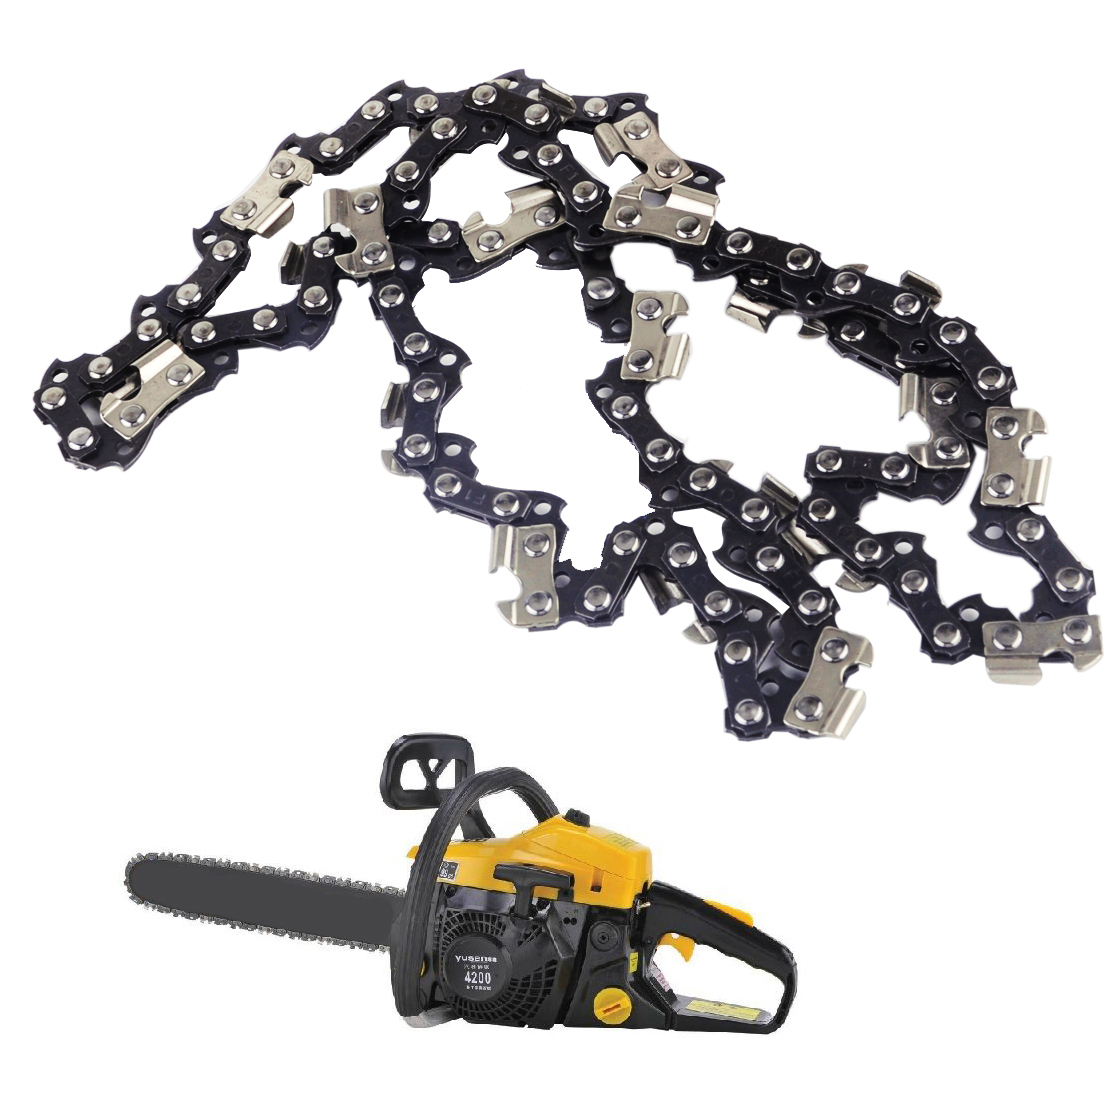 LETAOSK New Chainsaw Saw Chain 3/8